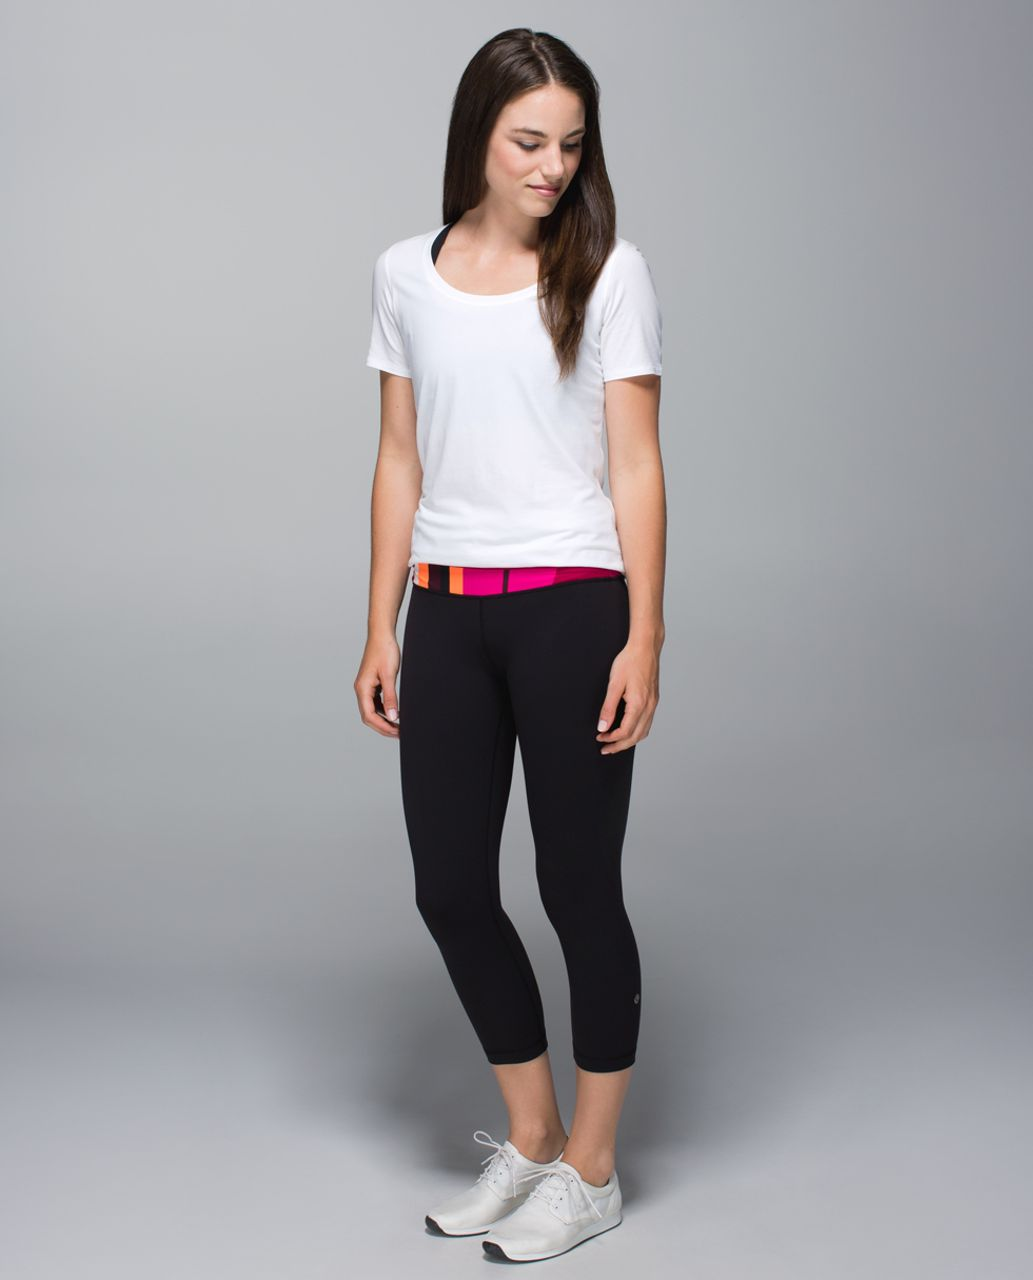 Lululemon Astro Wunder Under Crop II - Black / Bordeaux Drama / Bumble Berry